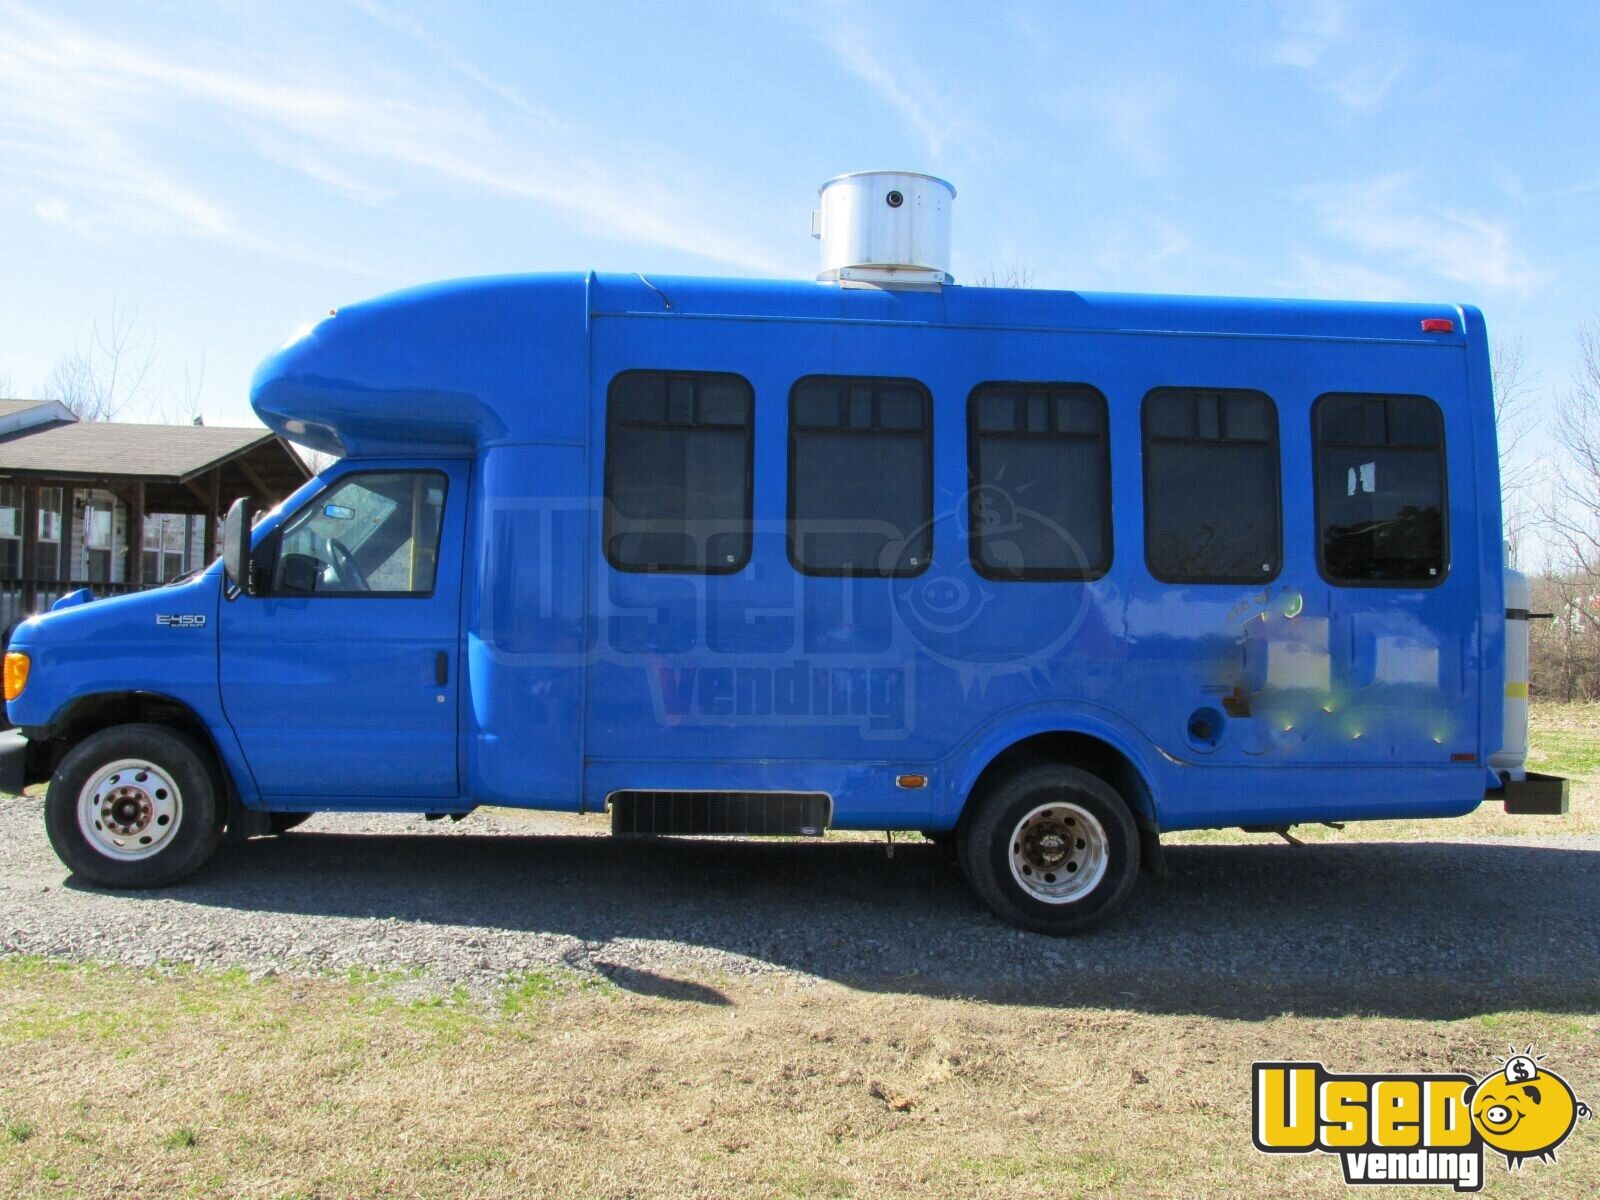 2004 Ford E450 All-purpose Food Truck Air Conditioning Arkansas Diesel Engine for Sale - 2